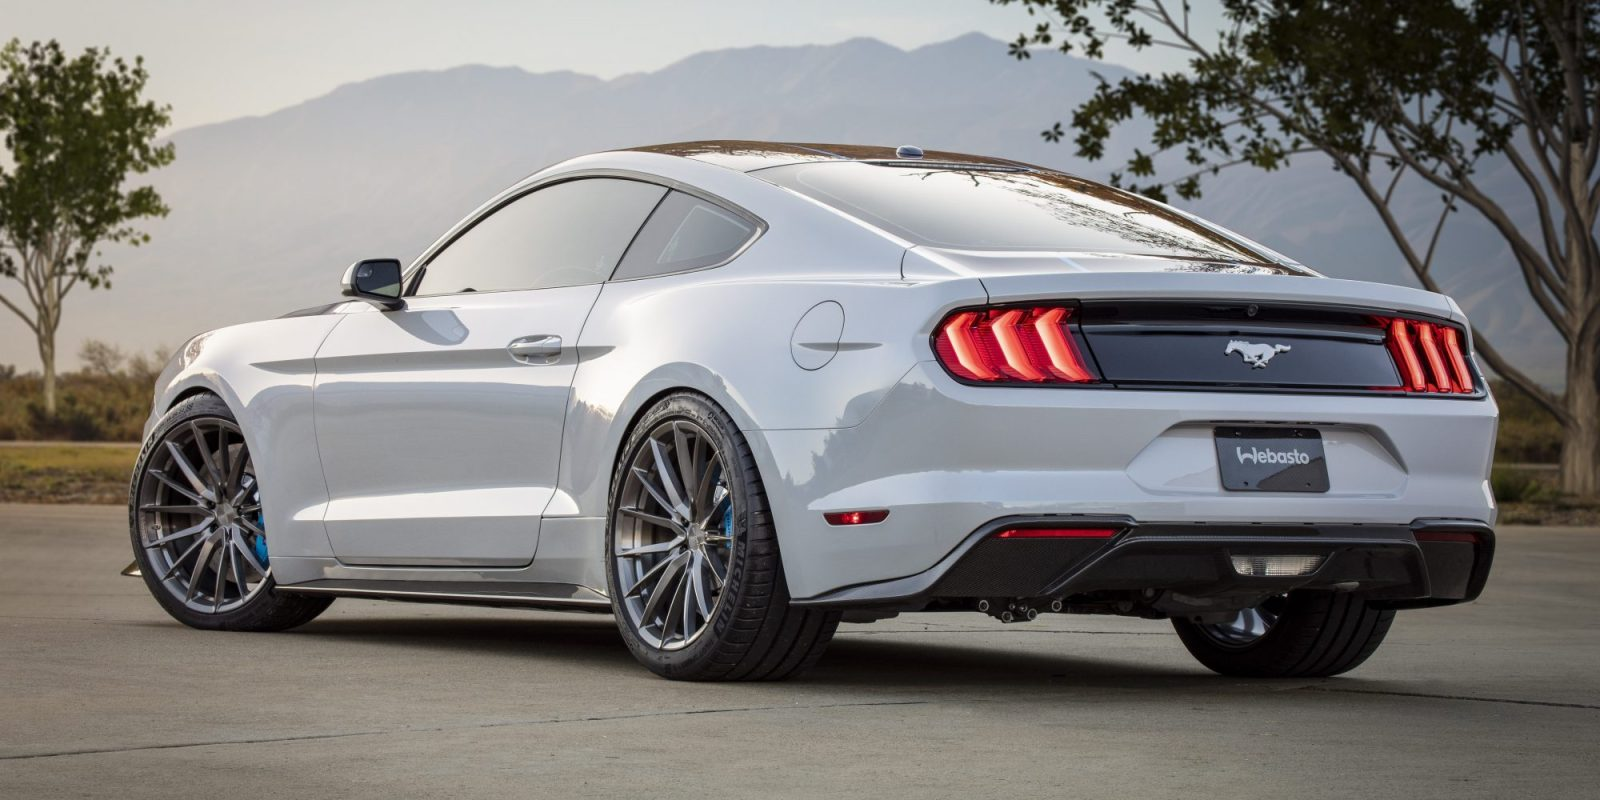 Ford reveals all-electric 'Mustang Lithium' with 900hp at SEMA